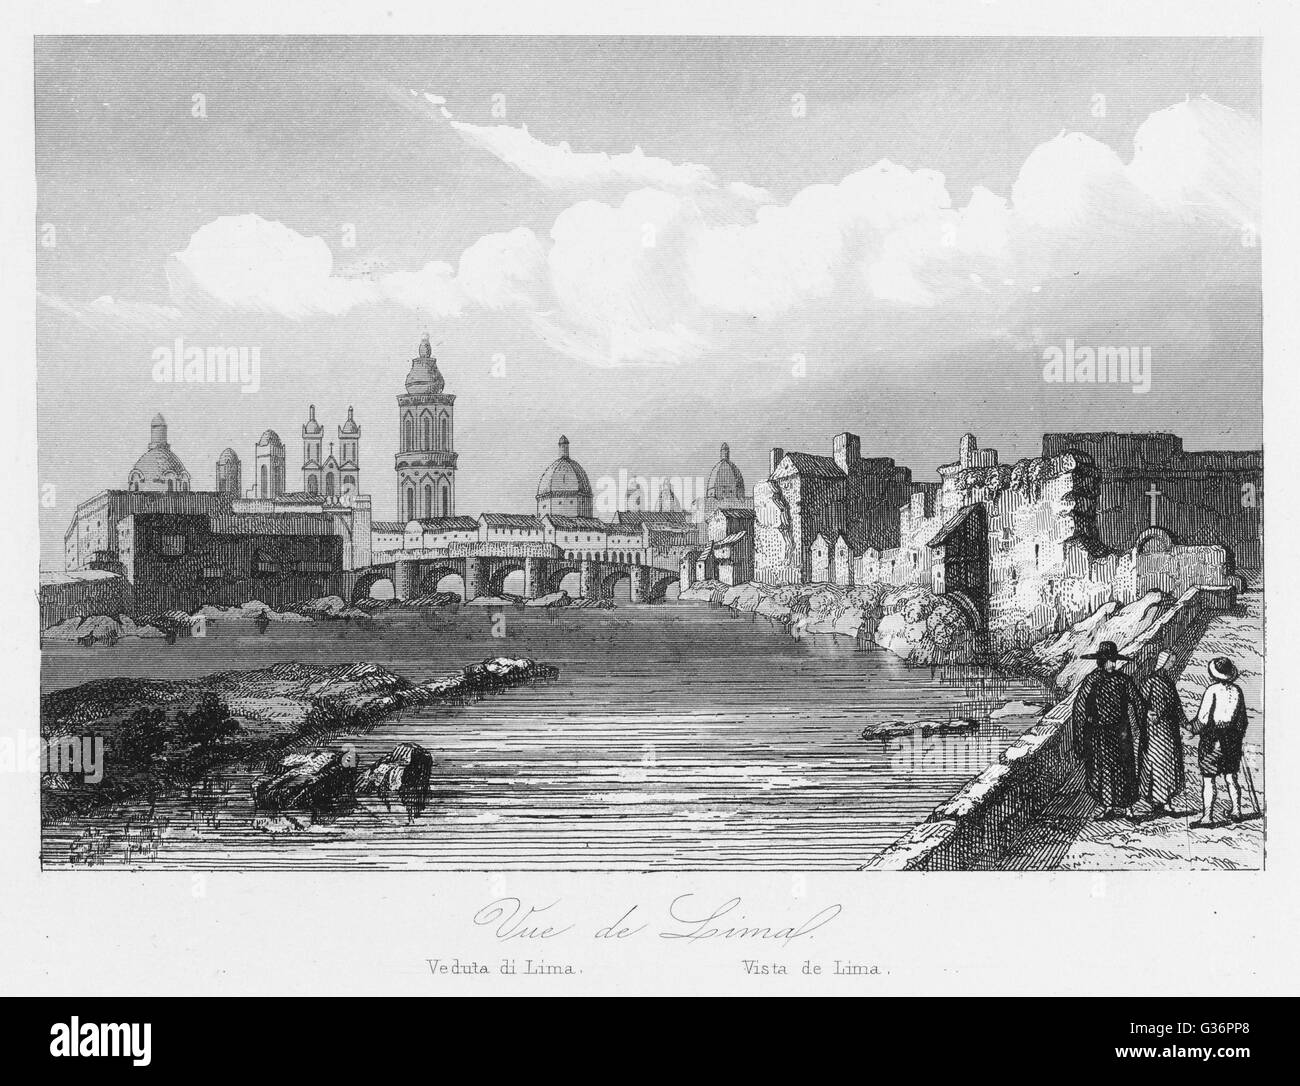 A general view of Lima, capital city of Peru, South America.      Date: 1846 - Stock Image